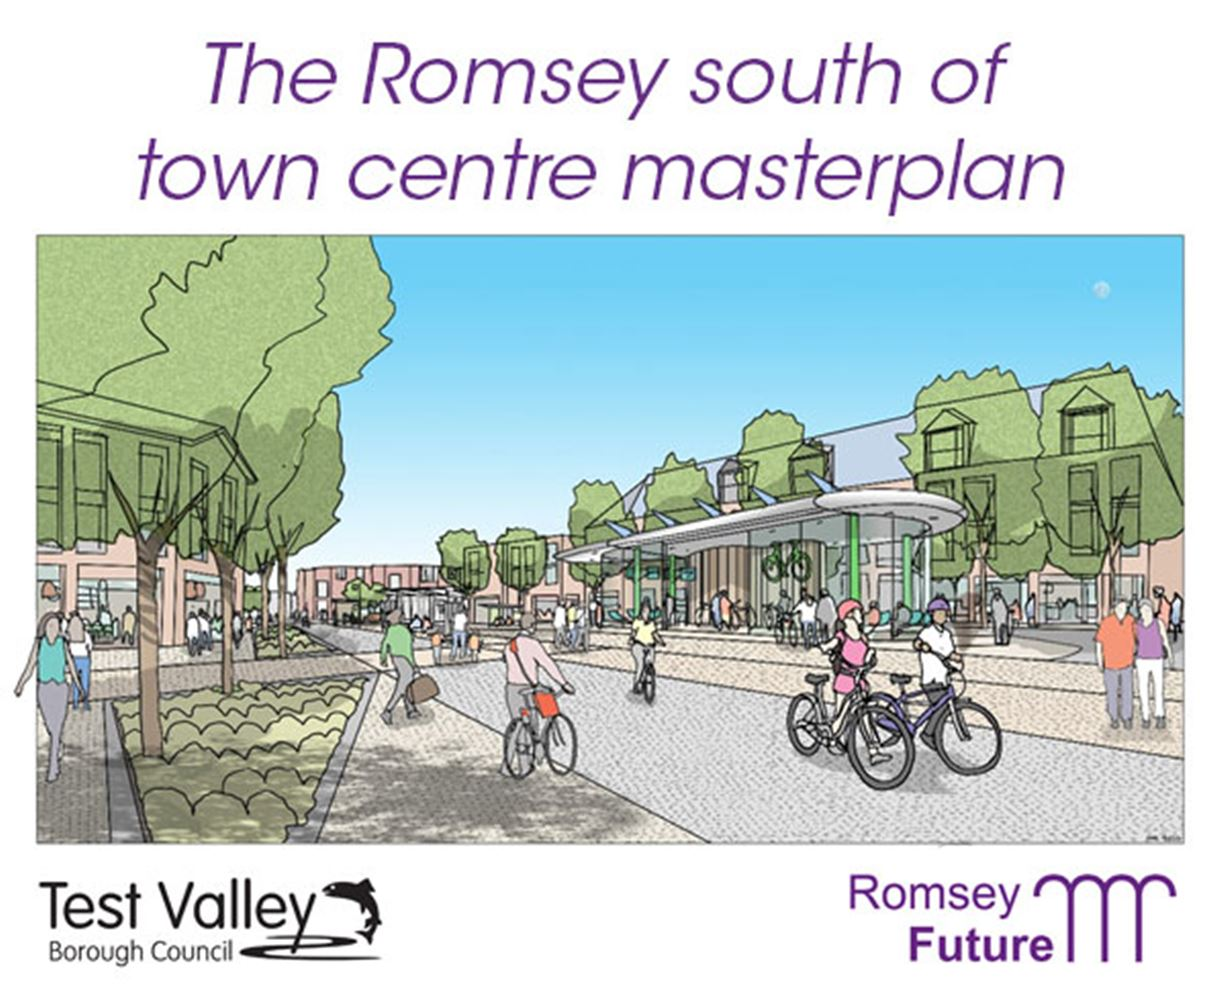 Romsey Future masterplan